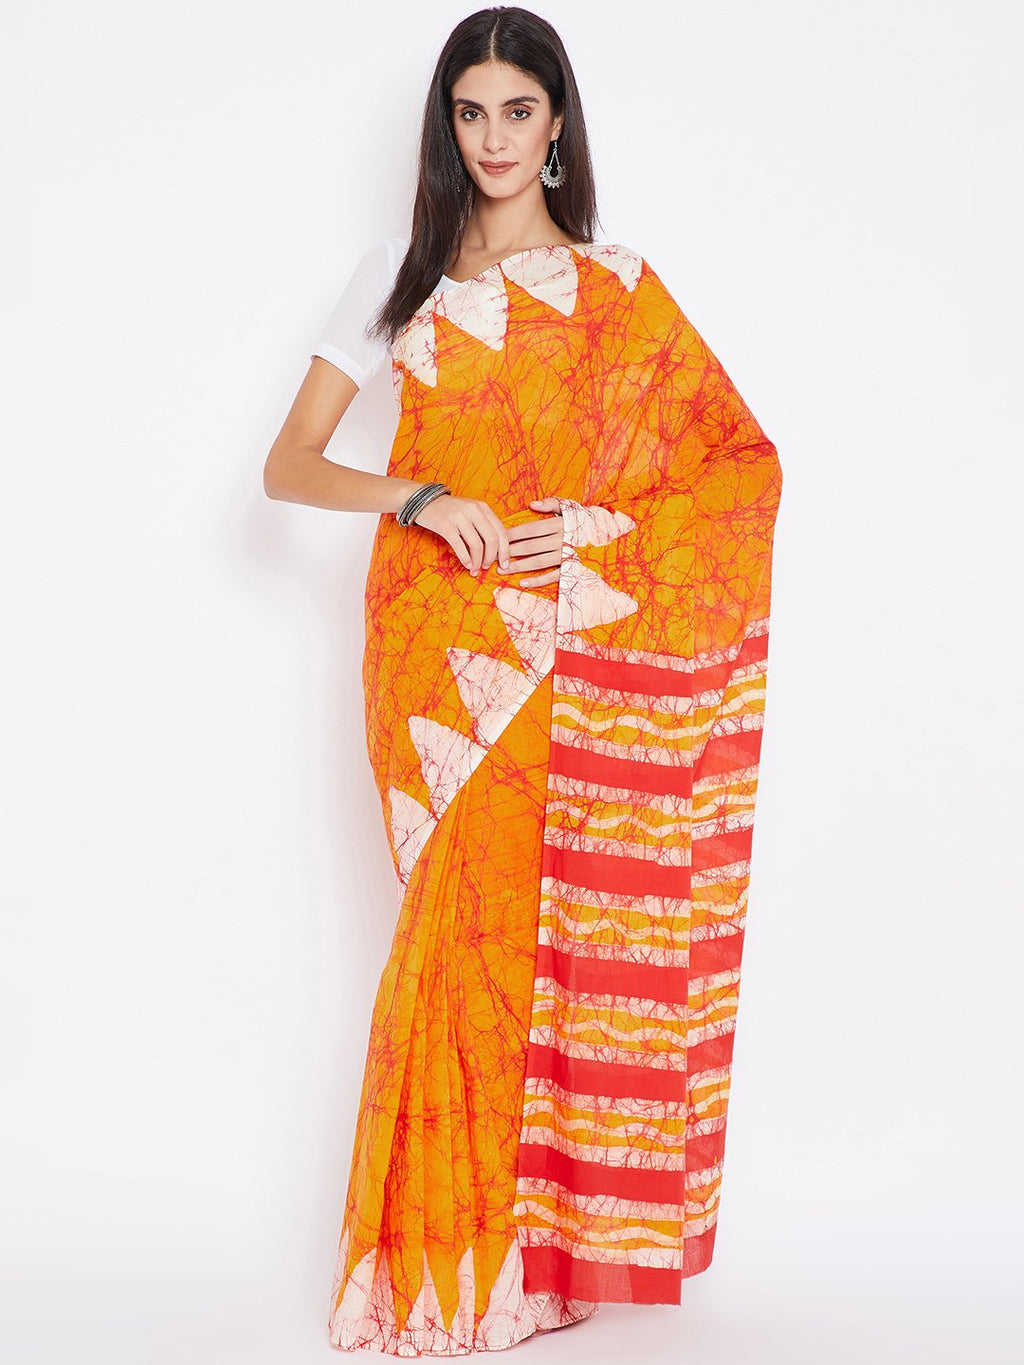 Red & Orange Batik Dyed Handcrafted Cotton Saree-Saree-Kalakari India-BHKPSA0011-Batik, Cotton, Geographical Indication, Hand Blocks, Hand Crafted, Heritage Prints, Sarees, Sustainable Fabrics-[Linen,Ethnic,wear,Fashionista,Handloom,Handicraft,Indigo,blockprint,block,print,Cotton,Chanderi,Blue, latest,classy,party,bollywood,trendy,summer,style,traditional,formal,elegant,unique,style,hand,block,print, dabu,booti,gift,present,glamorous,affordable,collectible,Sari,Saree,printed, holi, Diwali, birth